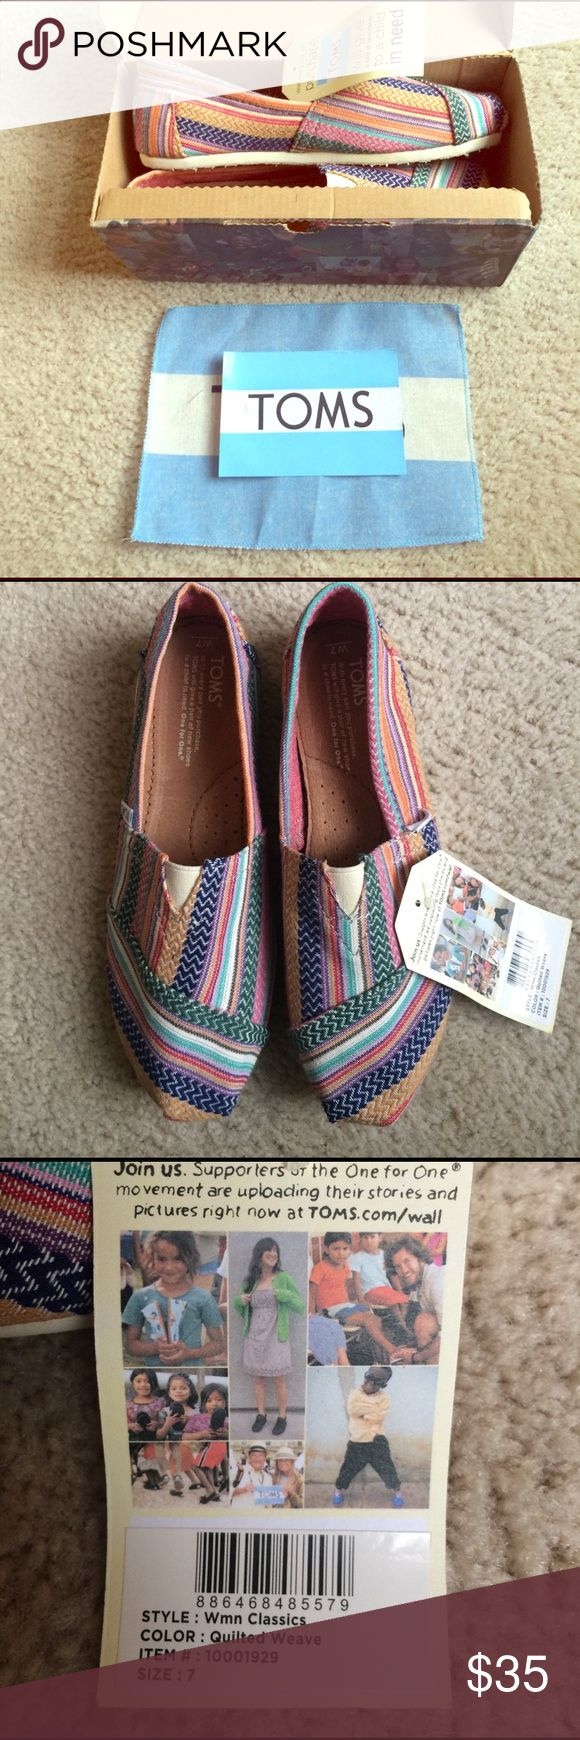 NWT TOMS in Quilted Weave Size 7F NWT, never worn perfect condition.  Original Toms slip on shoes in multicolor Quilted Weave. Size Women's 7. Original box, flag and sticker included. TOMS Shoes Sneakers